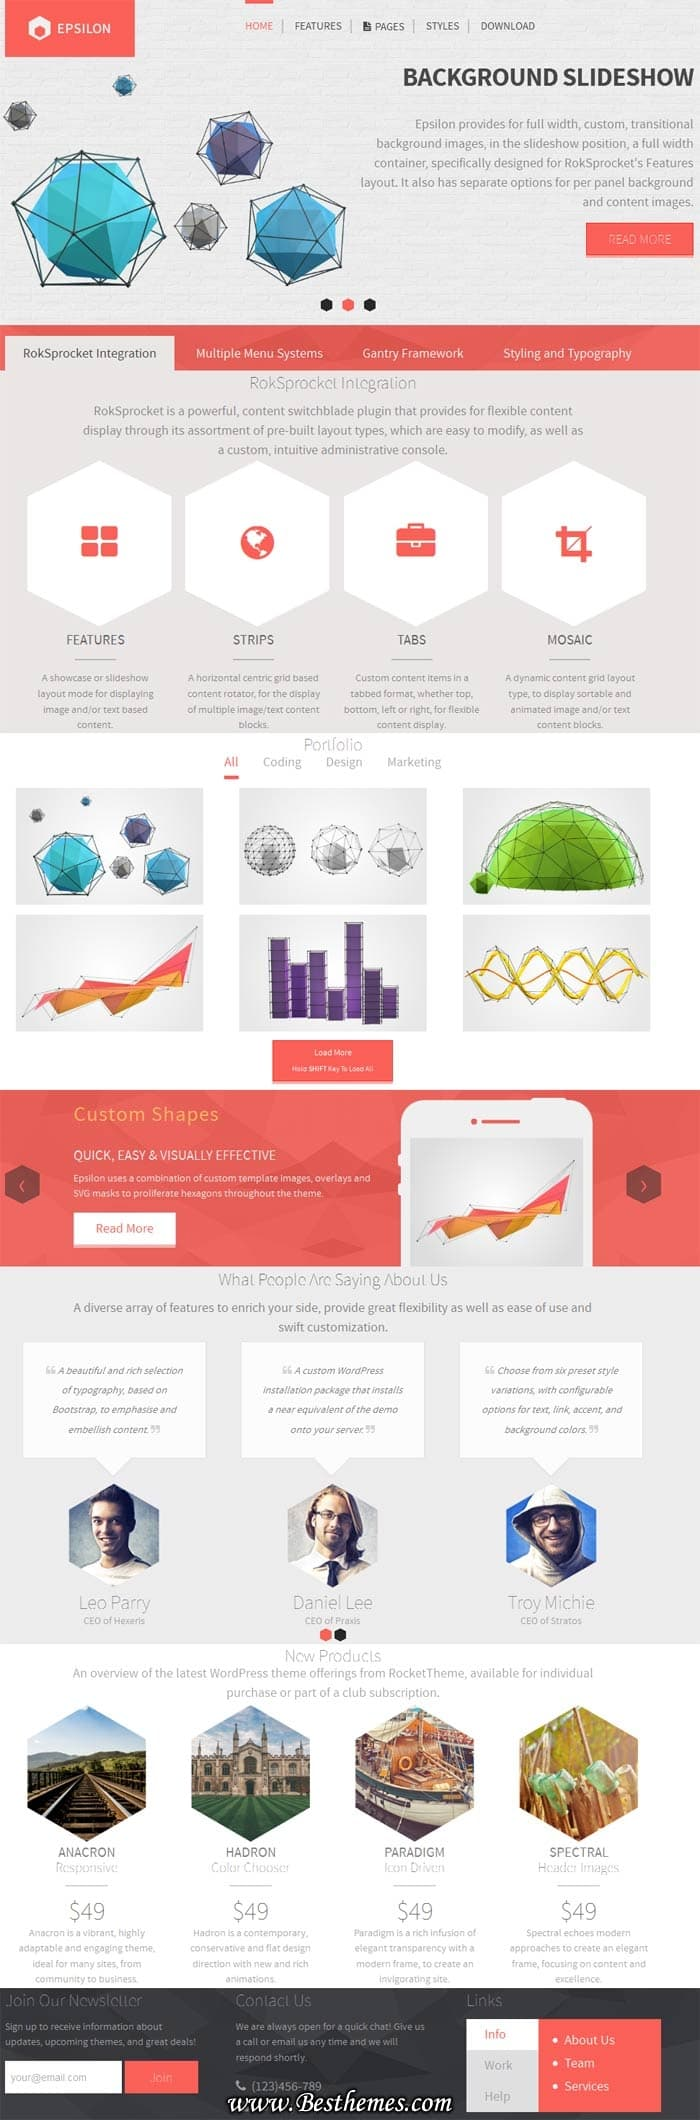 Epsilon WordPress Theme - Rocket Theme